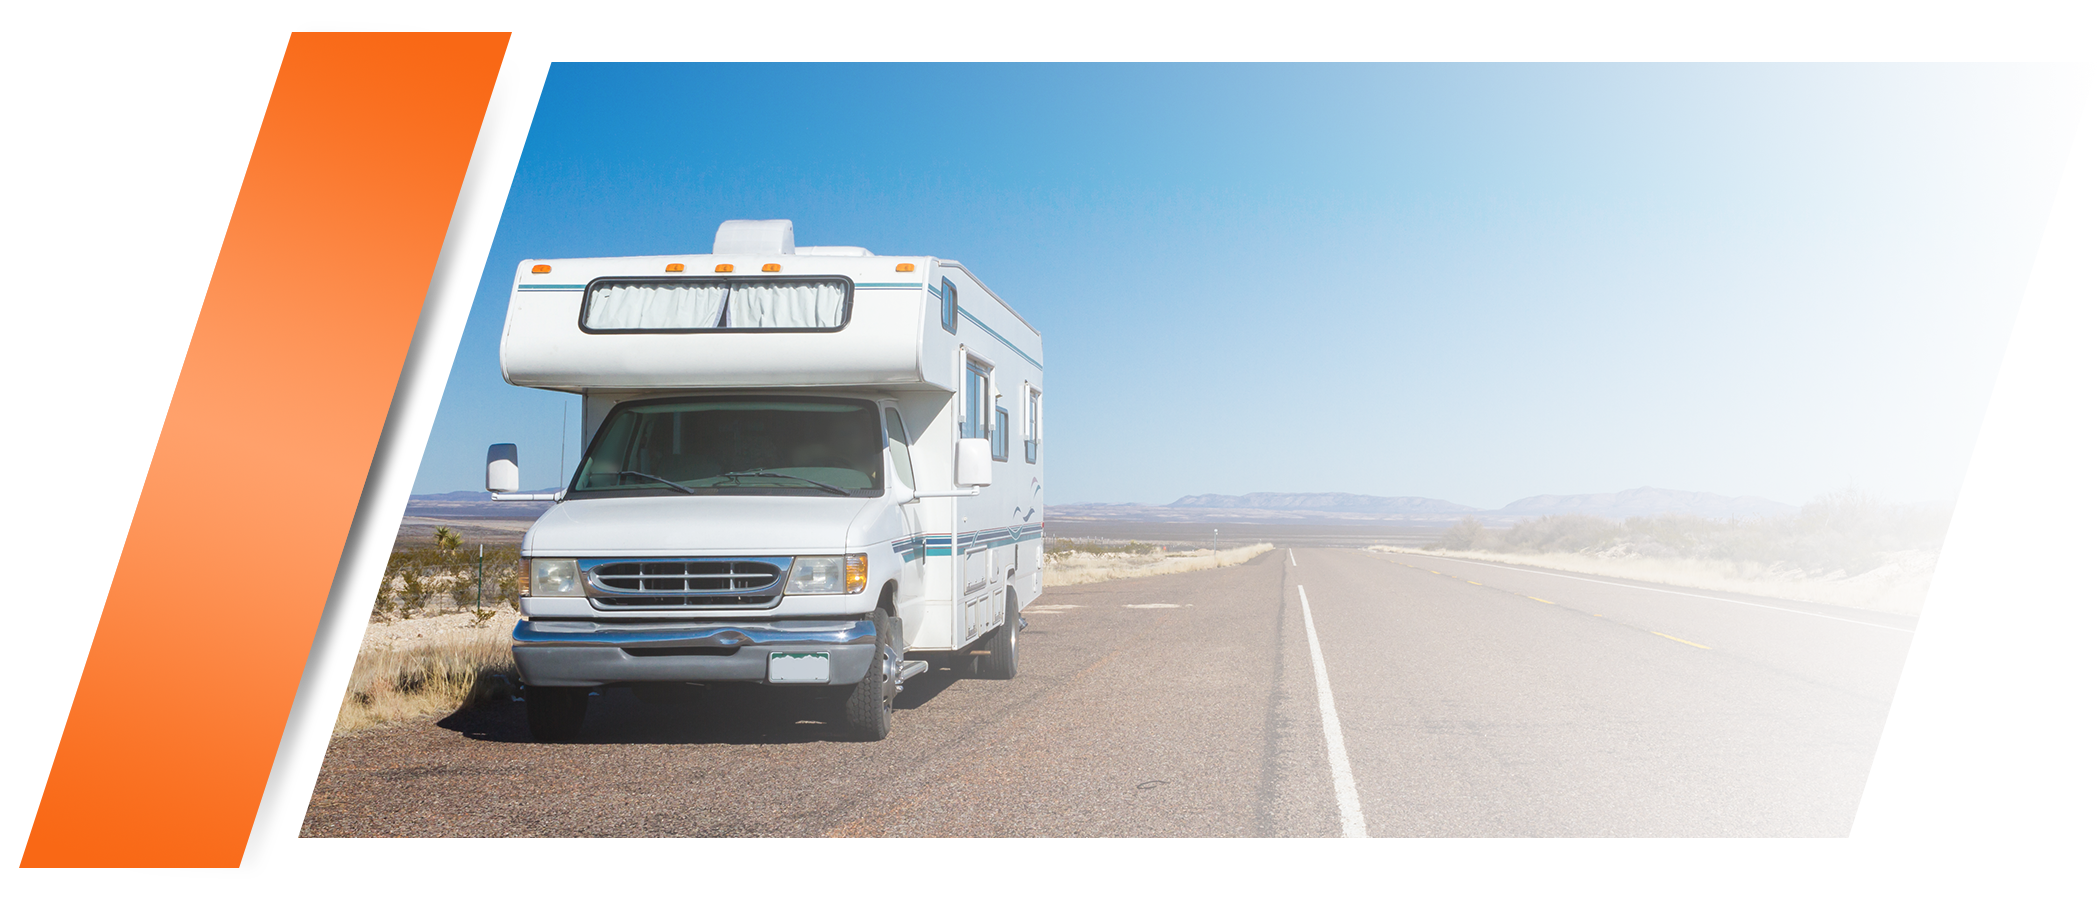 RV pulled on side of road